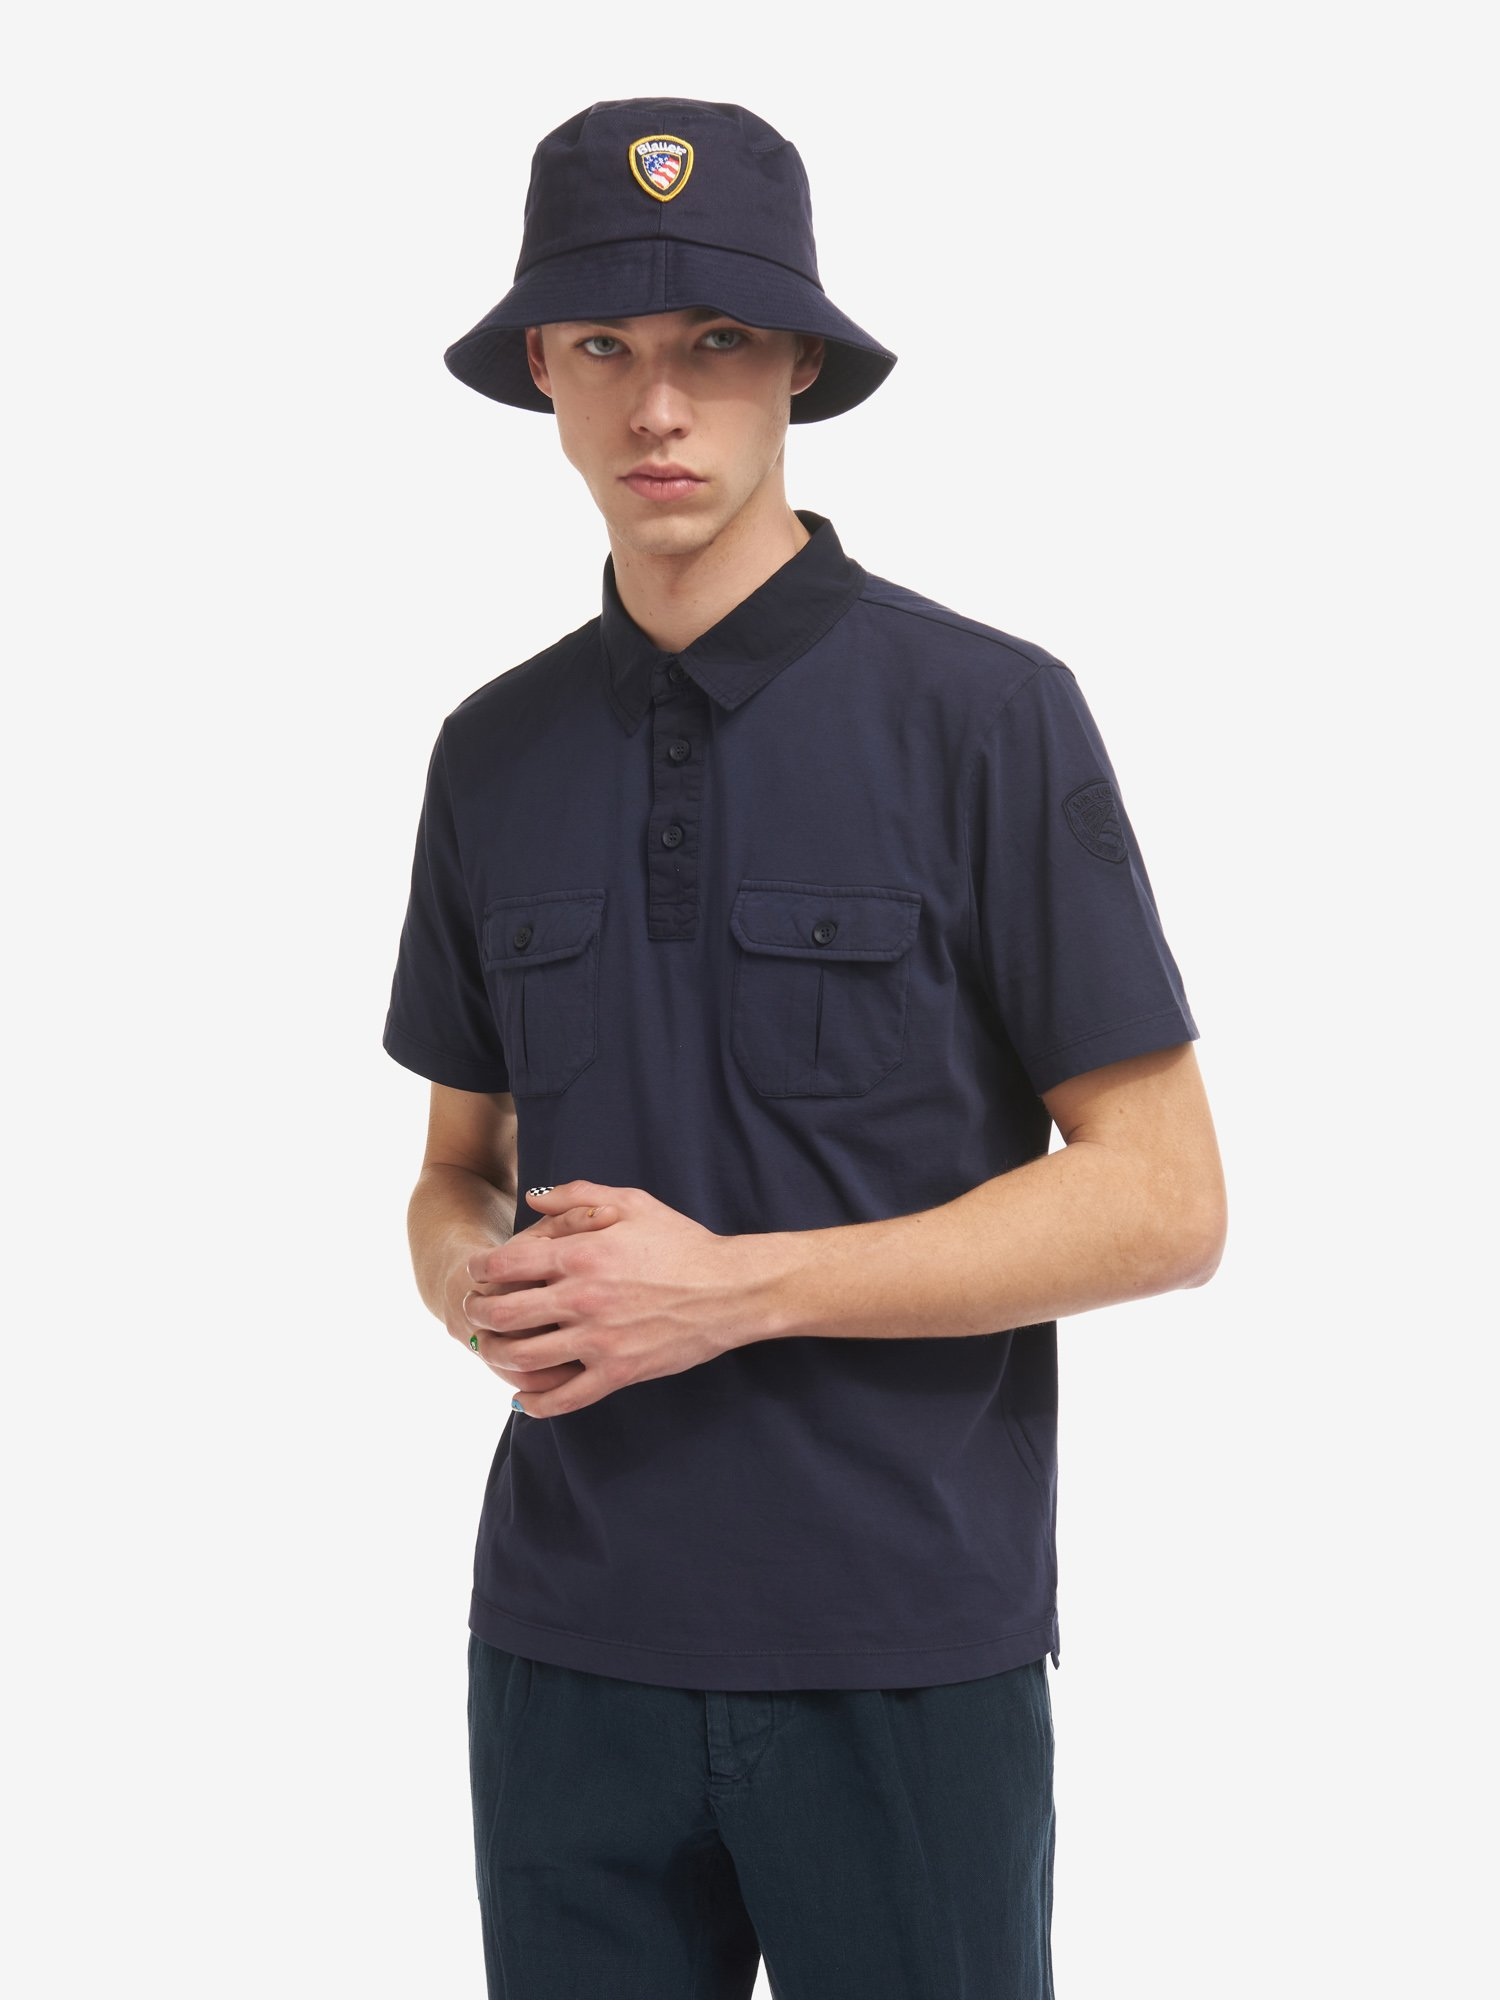 JERSEY POLO SHIRT WITH TWO POCKETS - Blauer